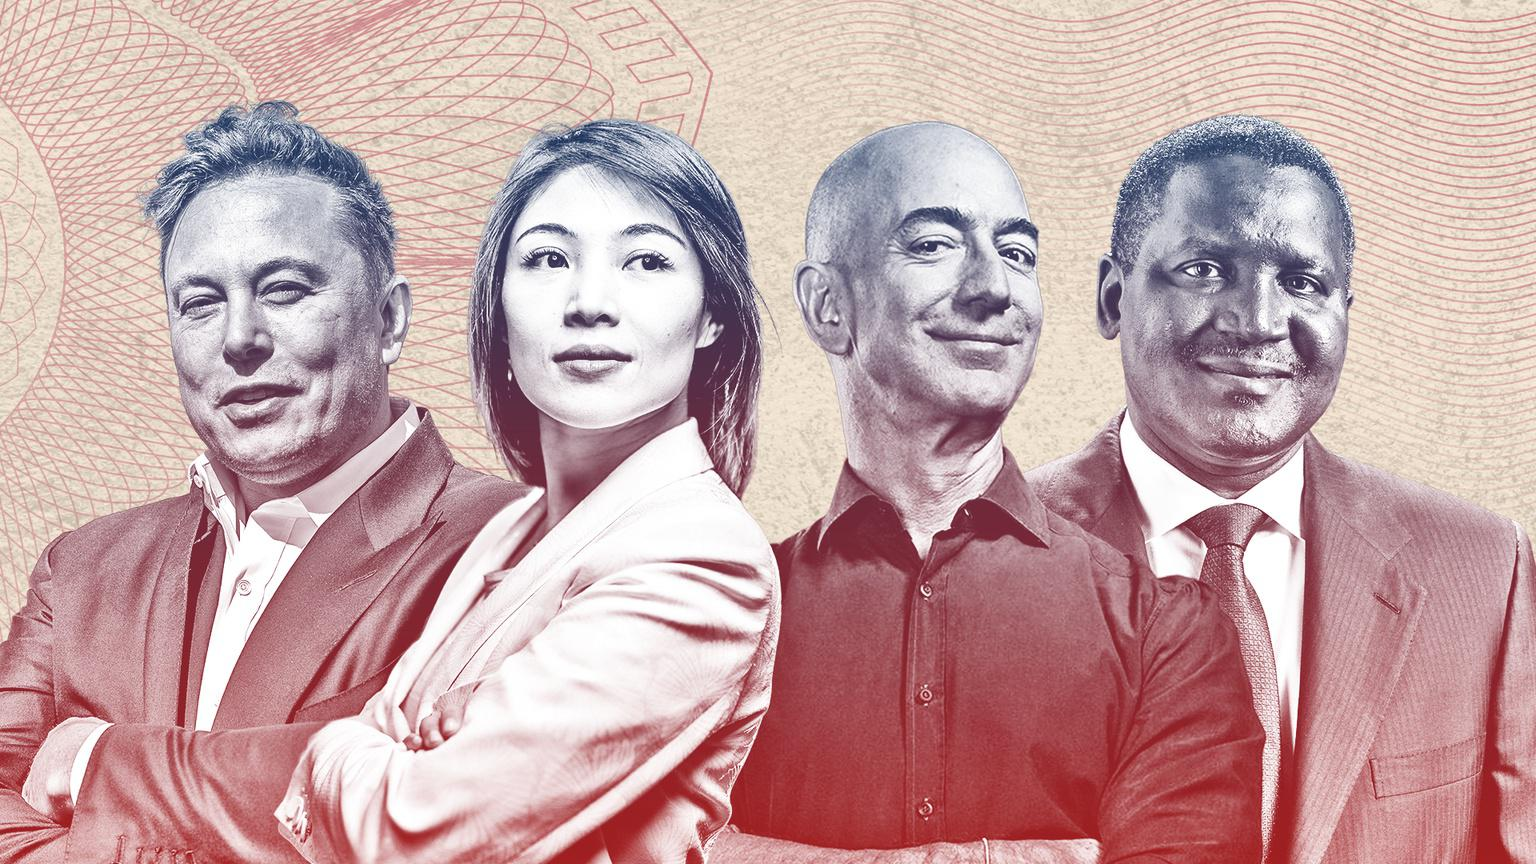 Images of Four billionaires: Elon Musk, China's Kate Wang, Jeff Bezos, Aliko Dangote.